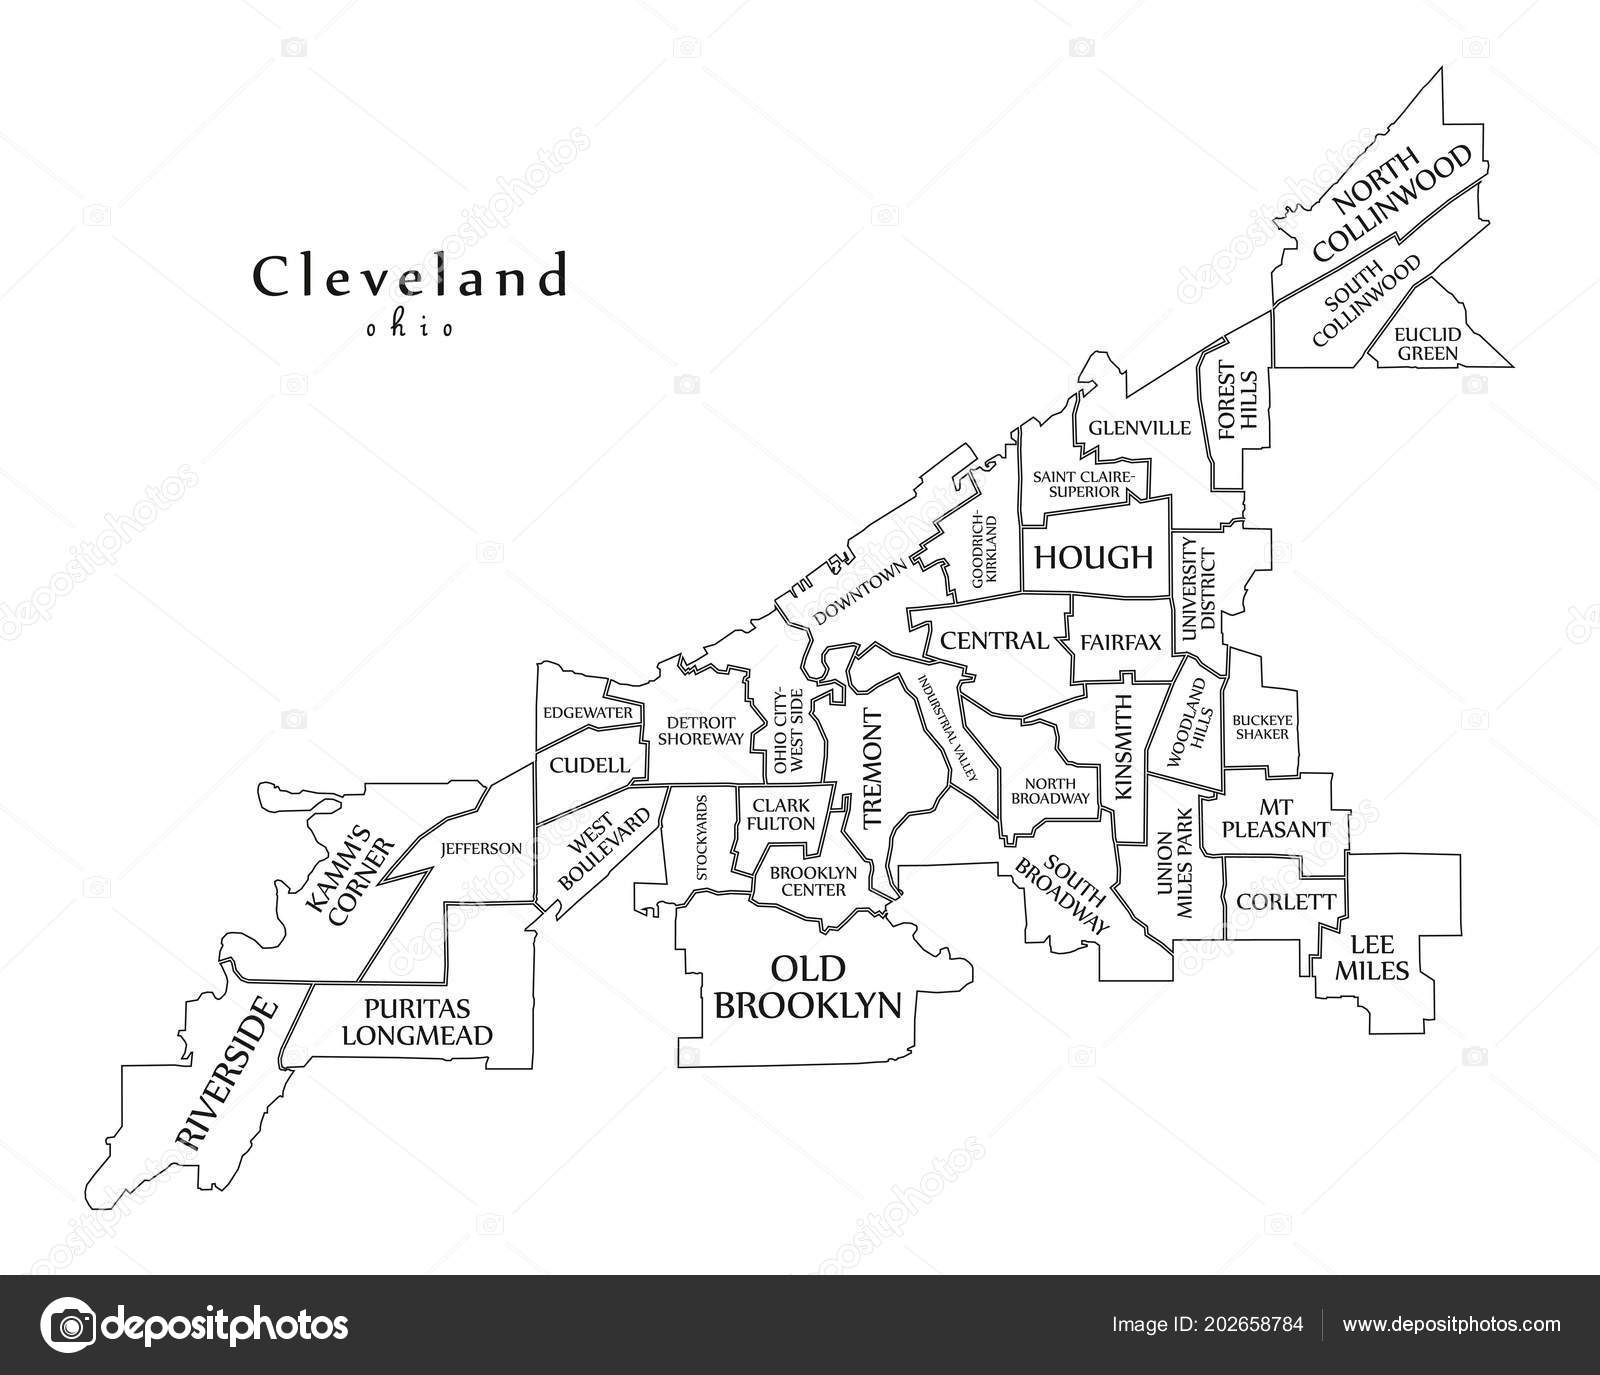 Outline Map Of Ohio.Modern City Map Cleveland Ohio City Usa Neighborhoods Titles Outline